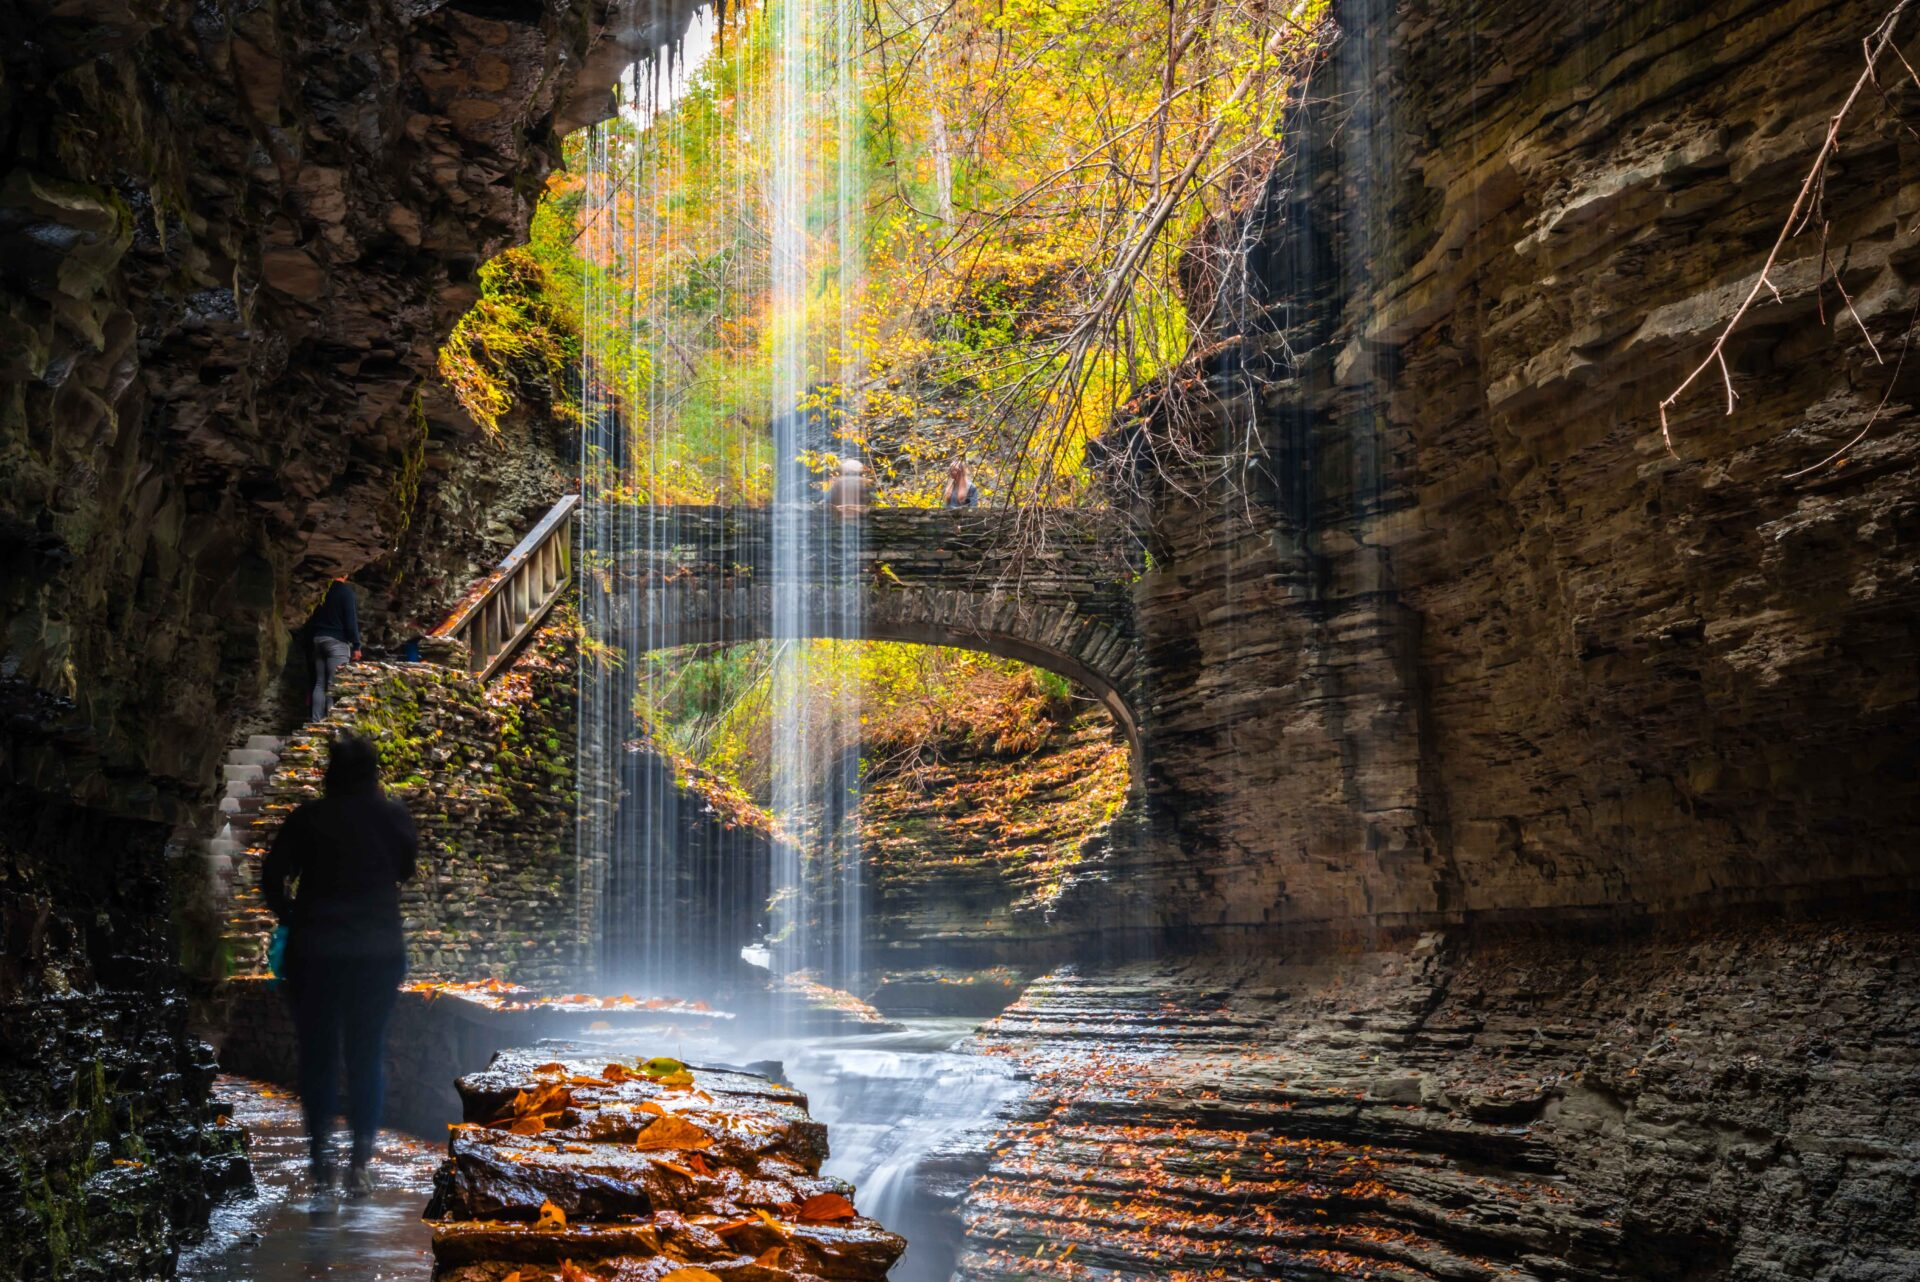 a stone bridge and waterfalls of Gorge trails in autumn of Letc